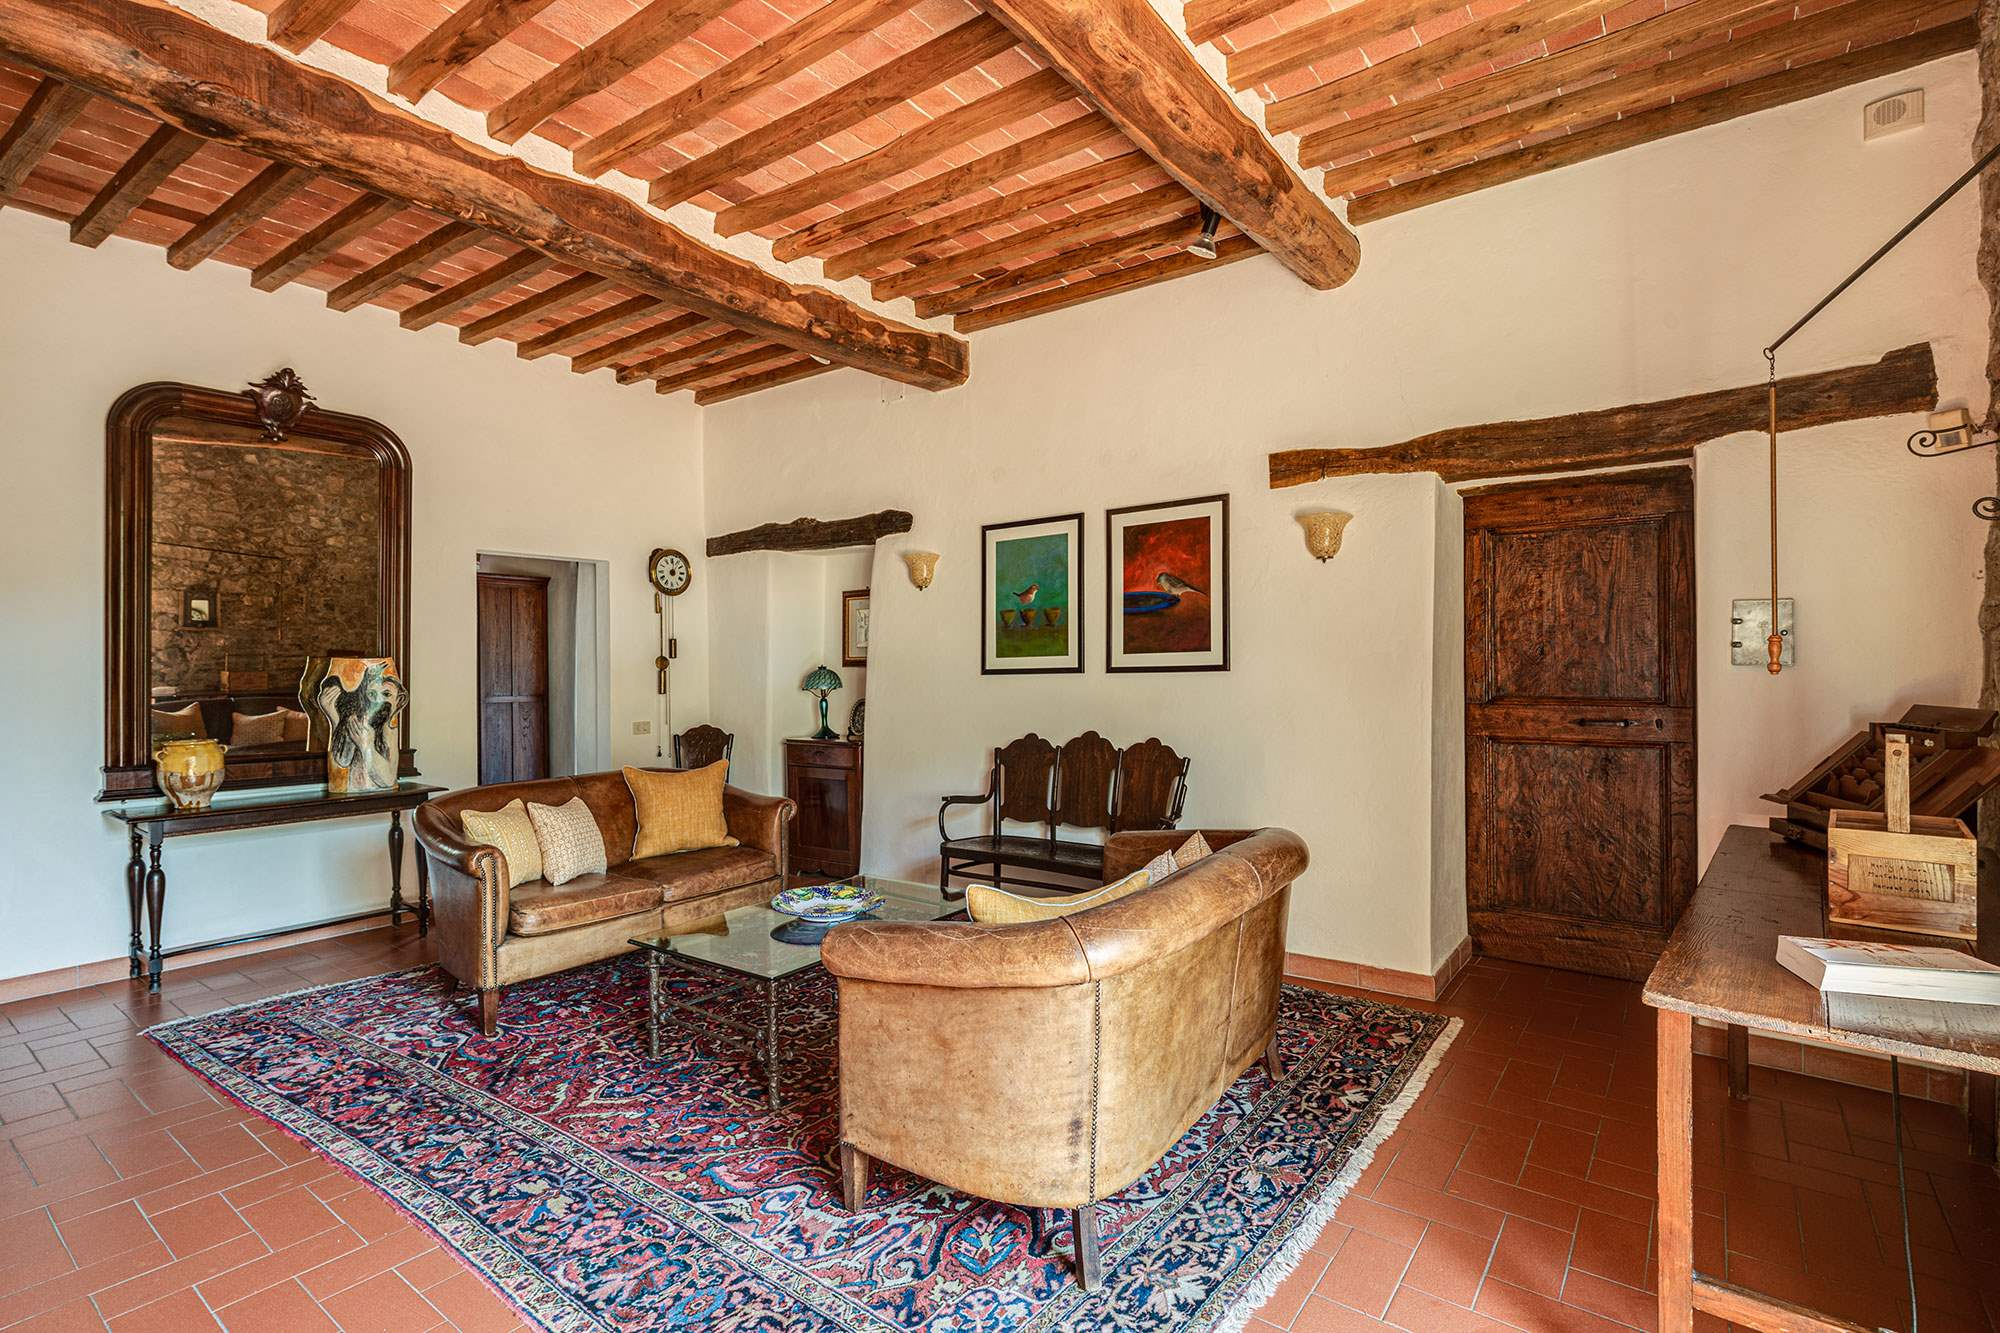 Villa Claudia, 5 Bedroom rate, 5 bedroom villa in Chianti & Countryside, Tuscany Photo #11